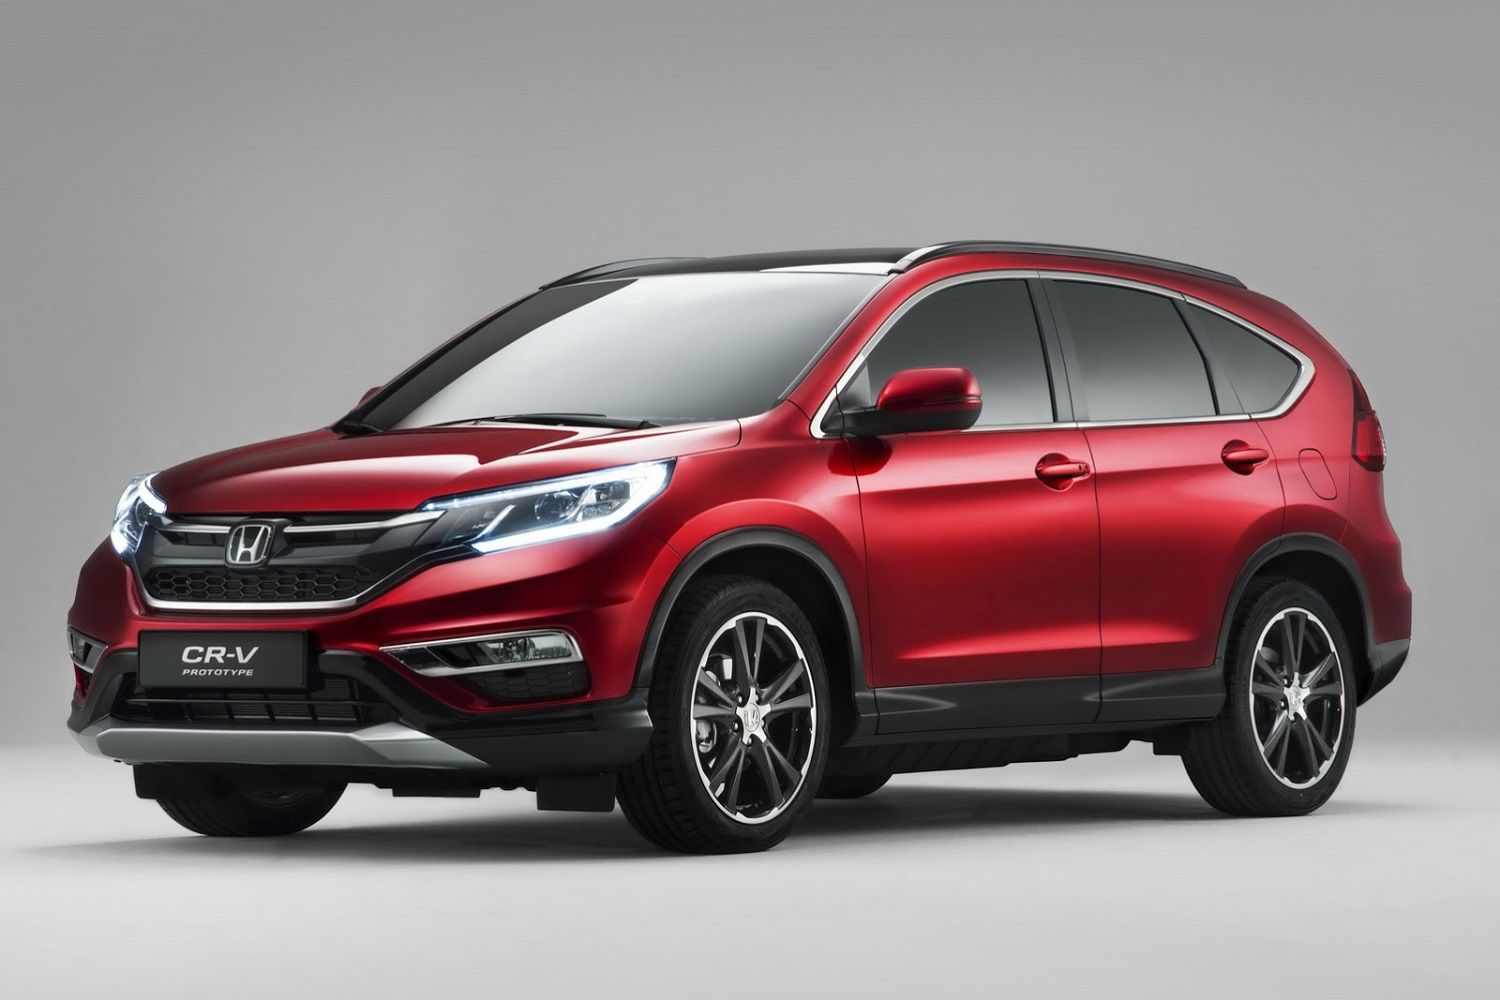 Honda Cr V Compact Crossover Suv For Sale Today You Can Get Great